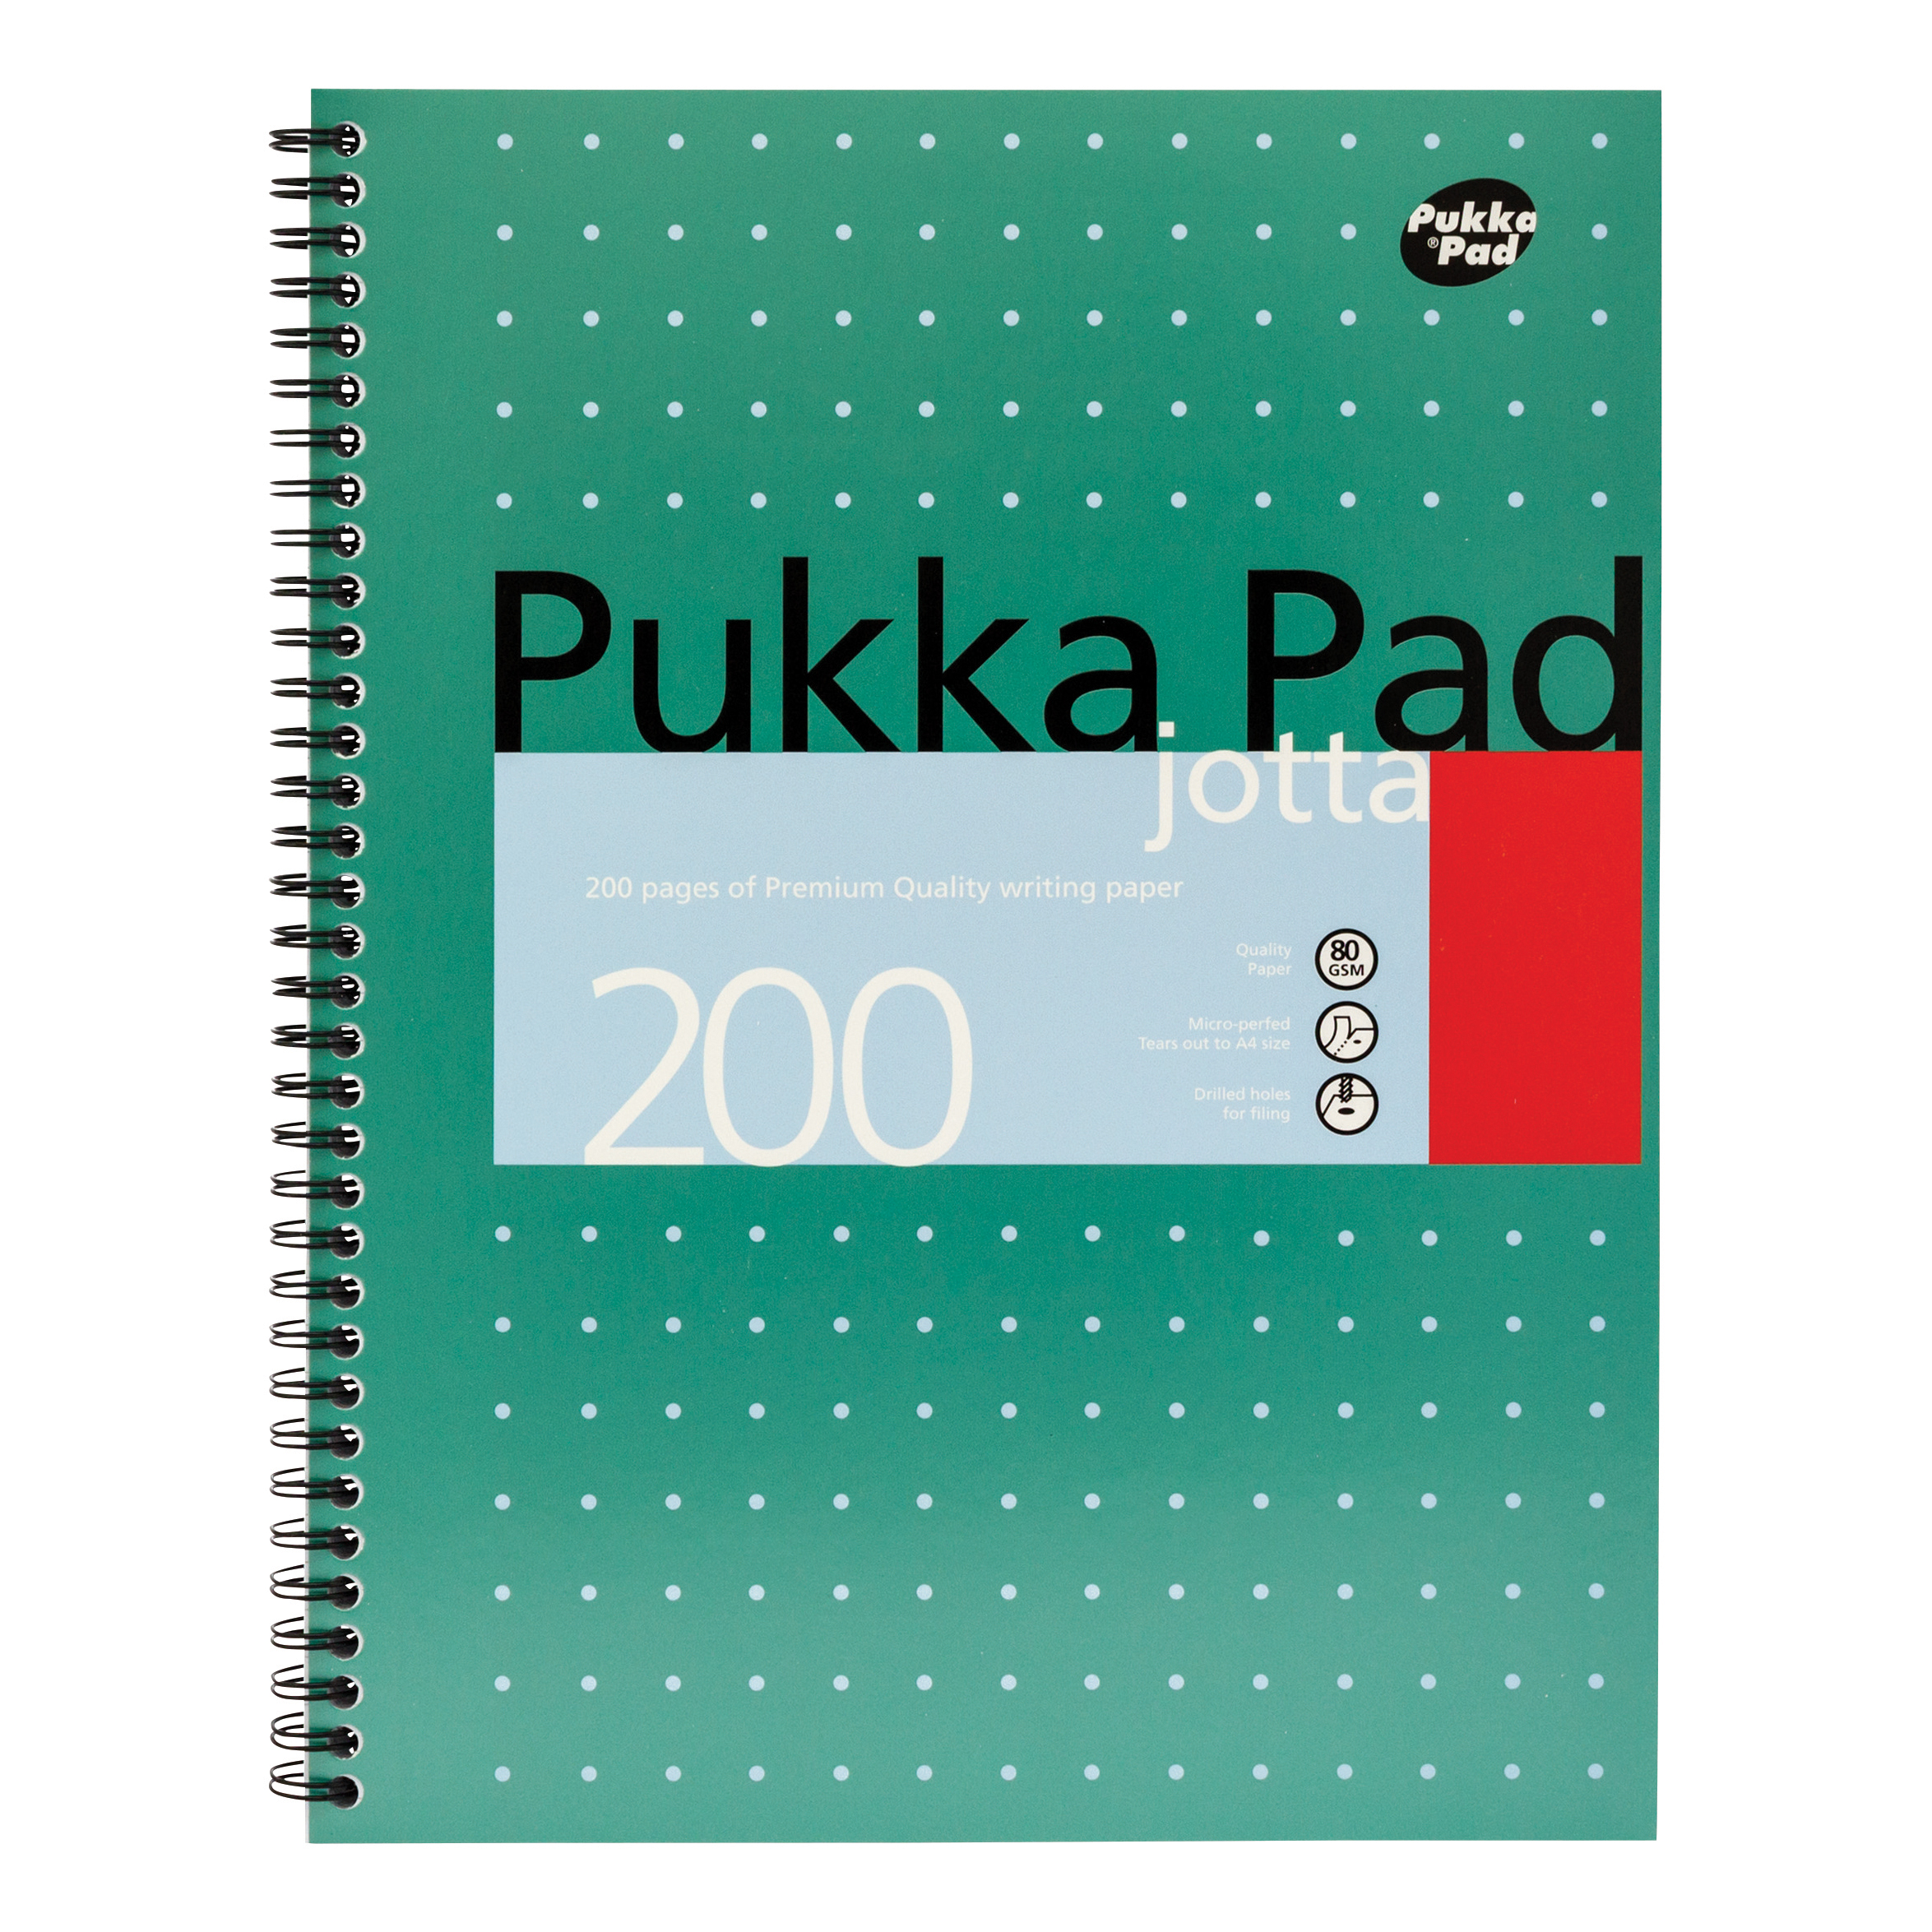 Pukka Pad Mettallic Jotta Nbk Wirebound 80gsm Ruled Margin Perf Punch 4 Hole 200pp A4+ Ref JM018 Pack 3